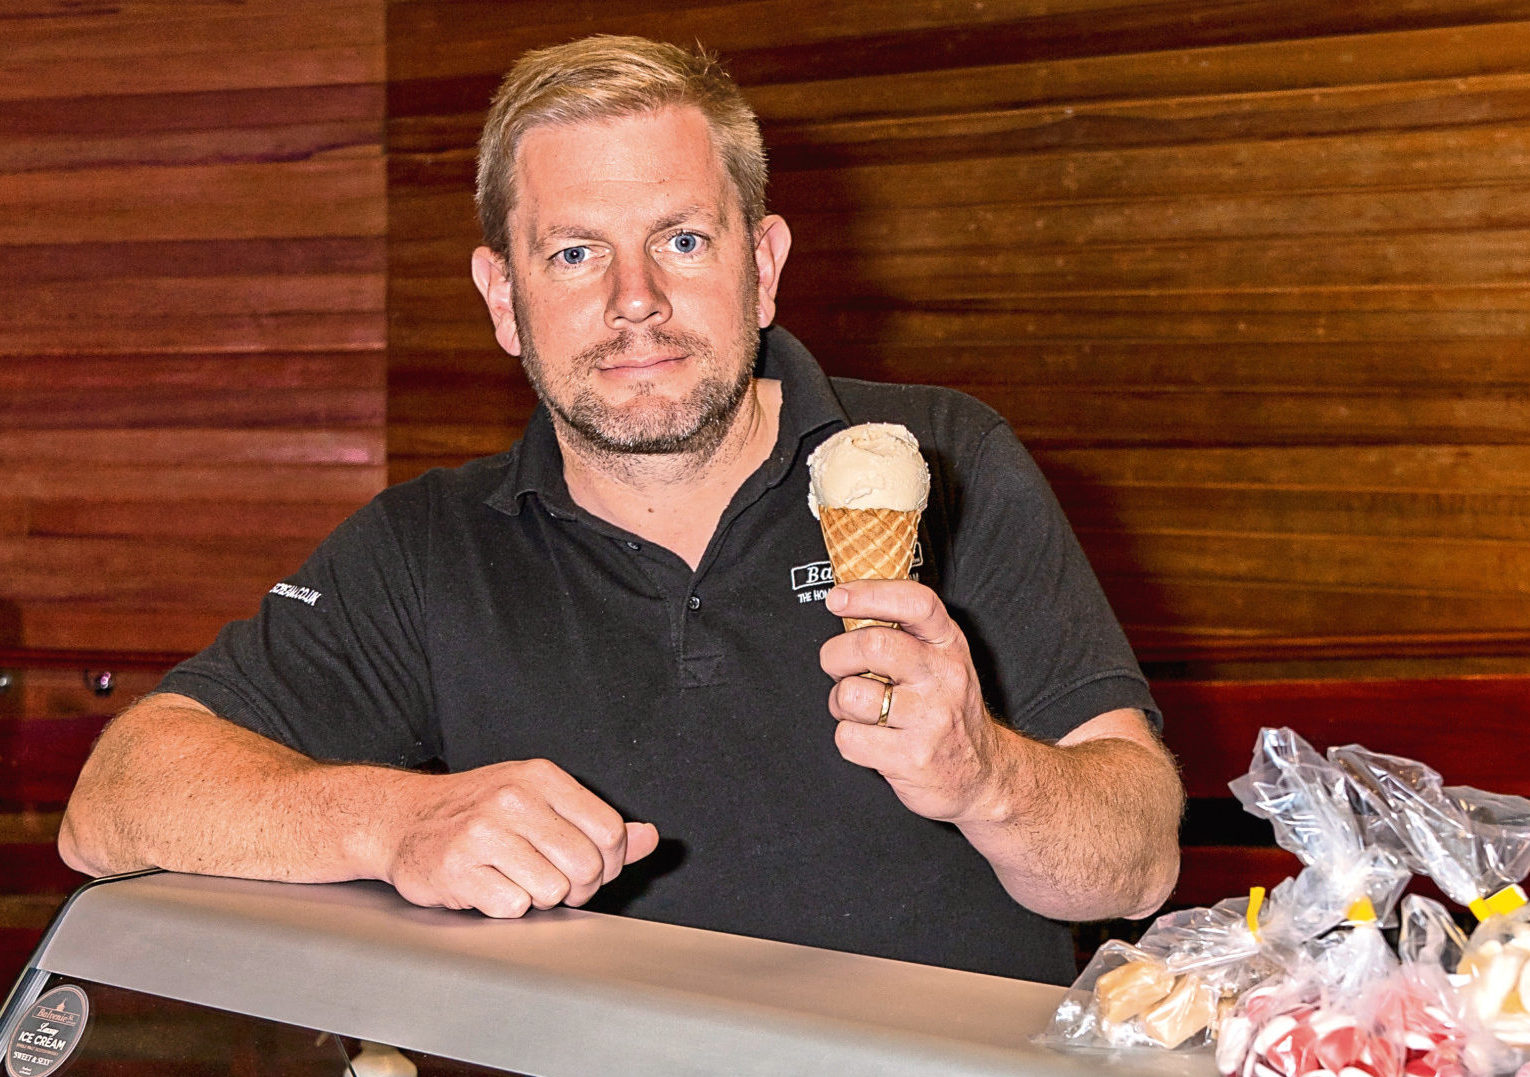 James Crean-Smith of Balvenie Street, Dufftown Ice Cream